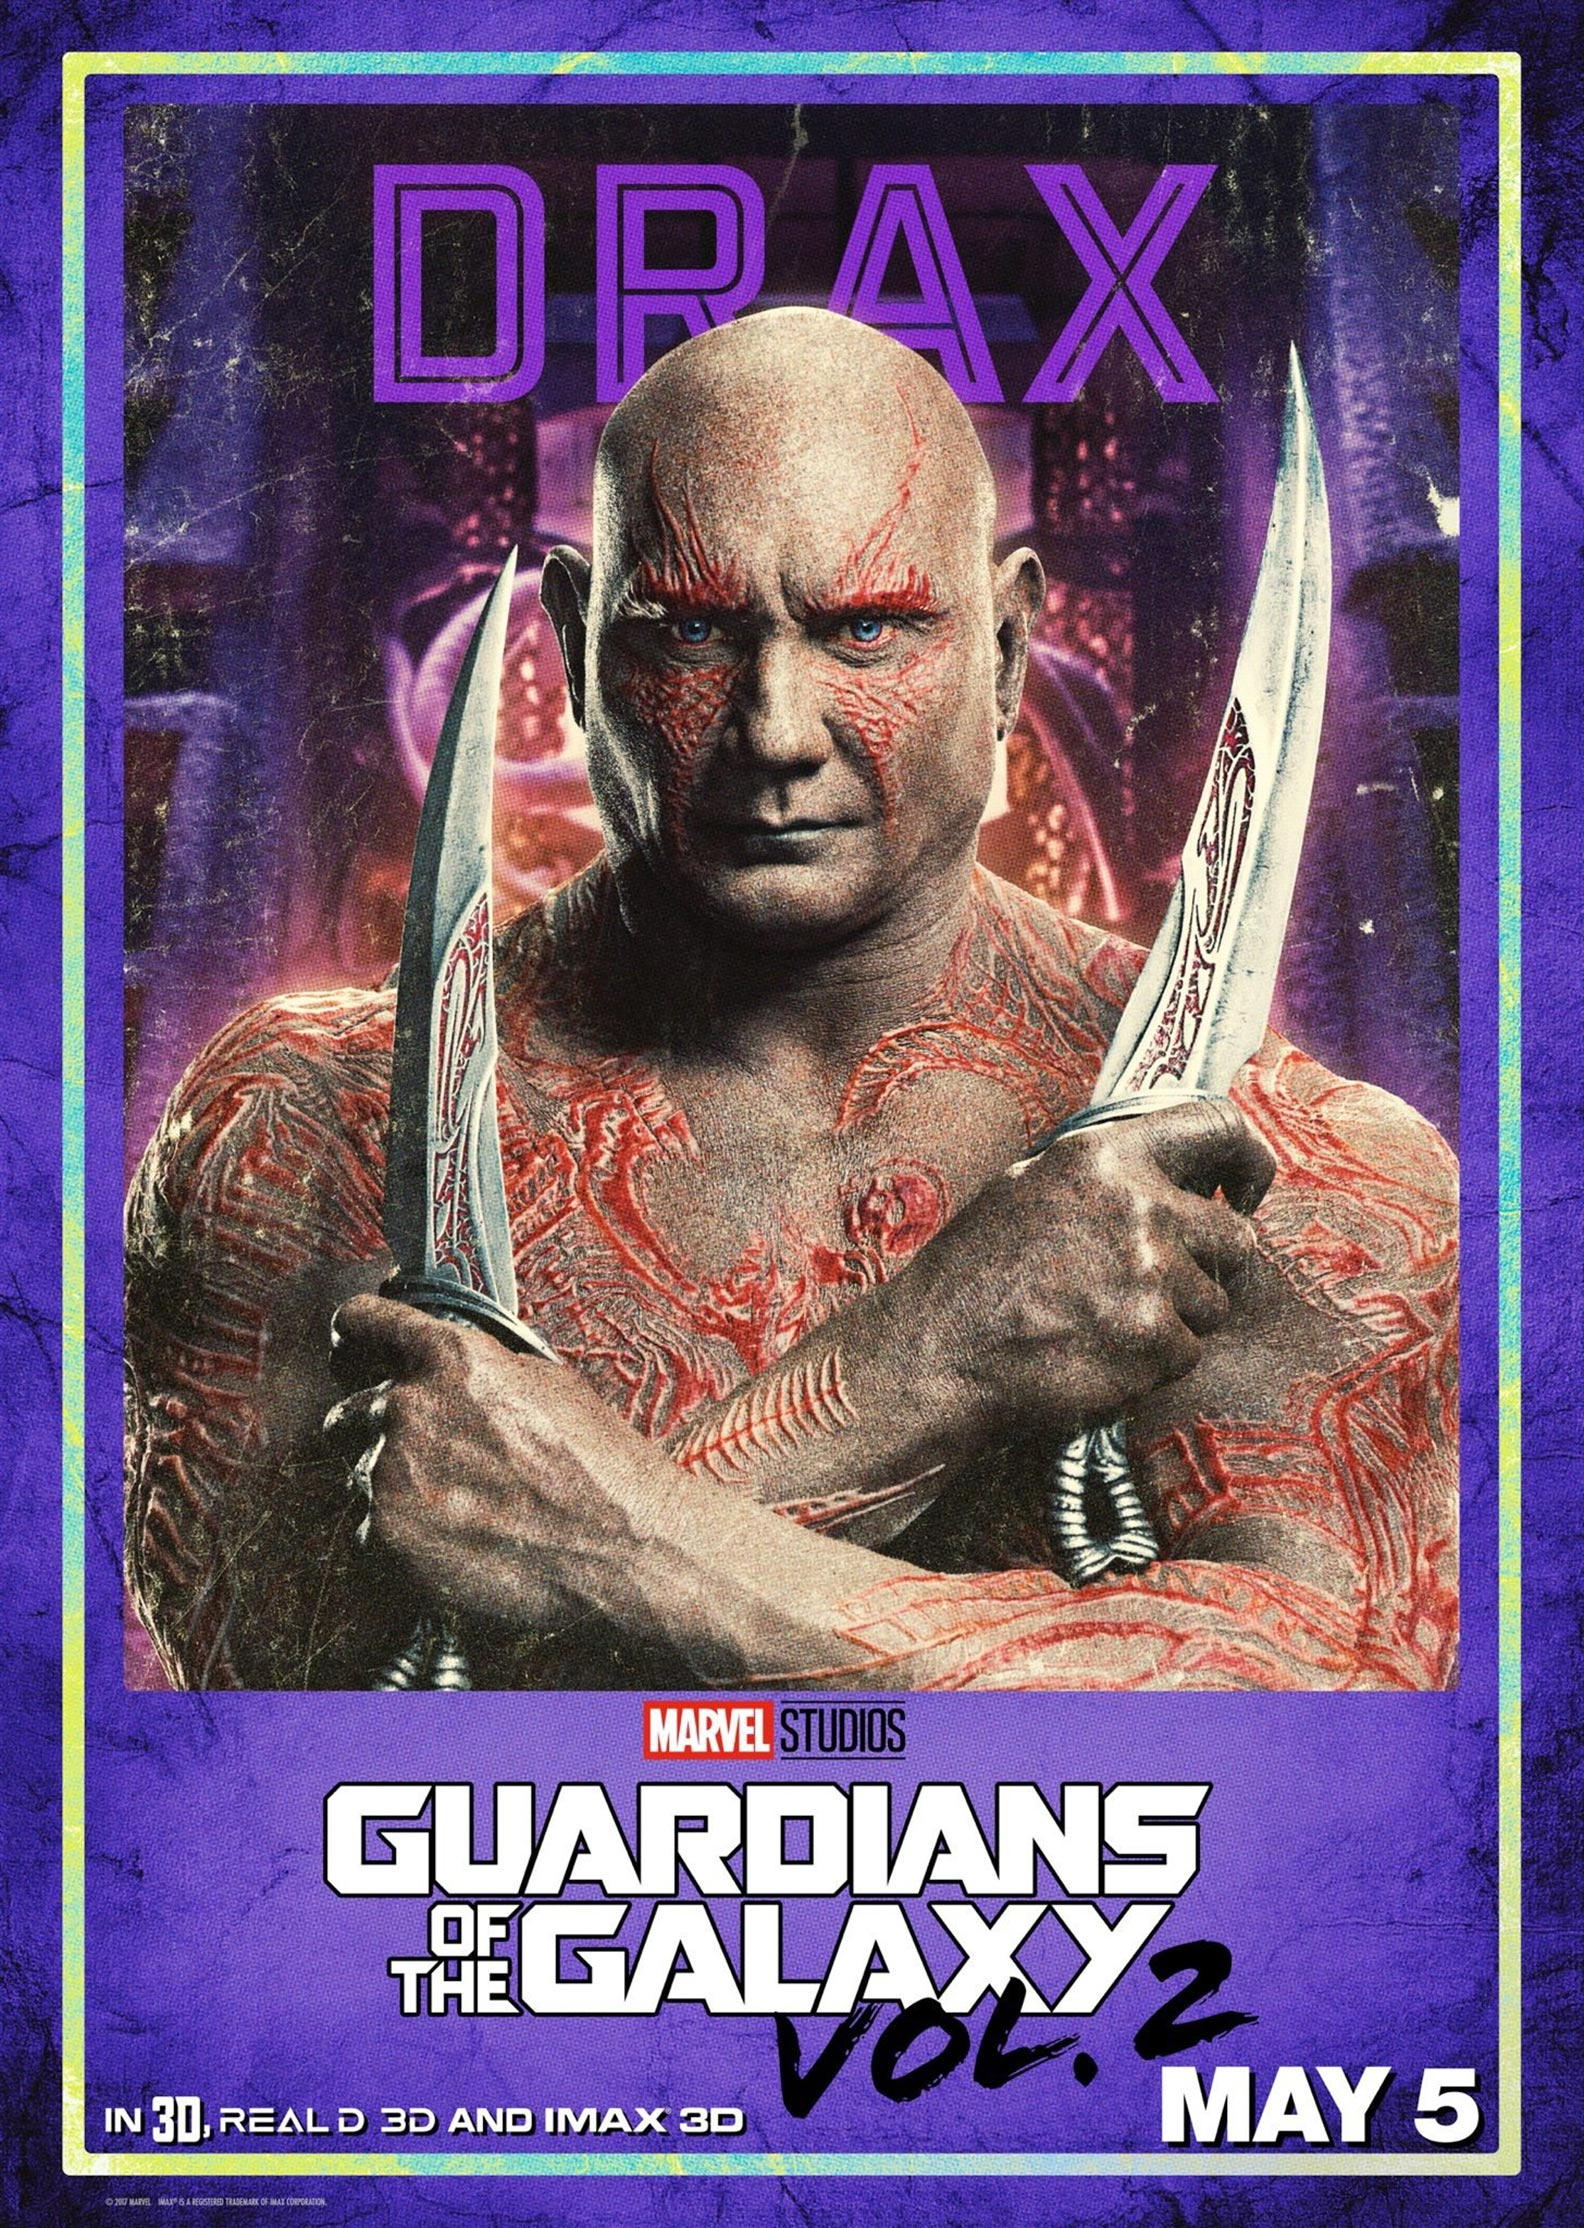 Guardians of the Galaxy Vol. 2 Poster #10